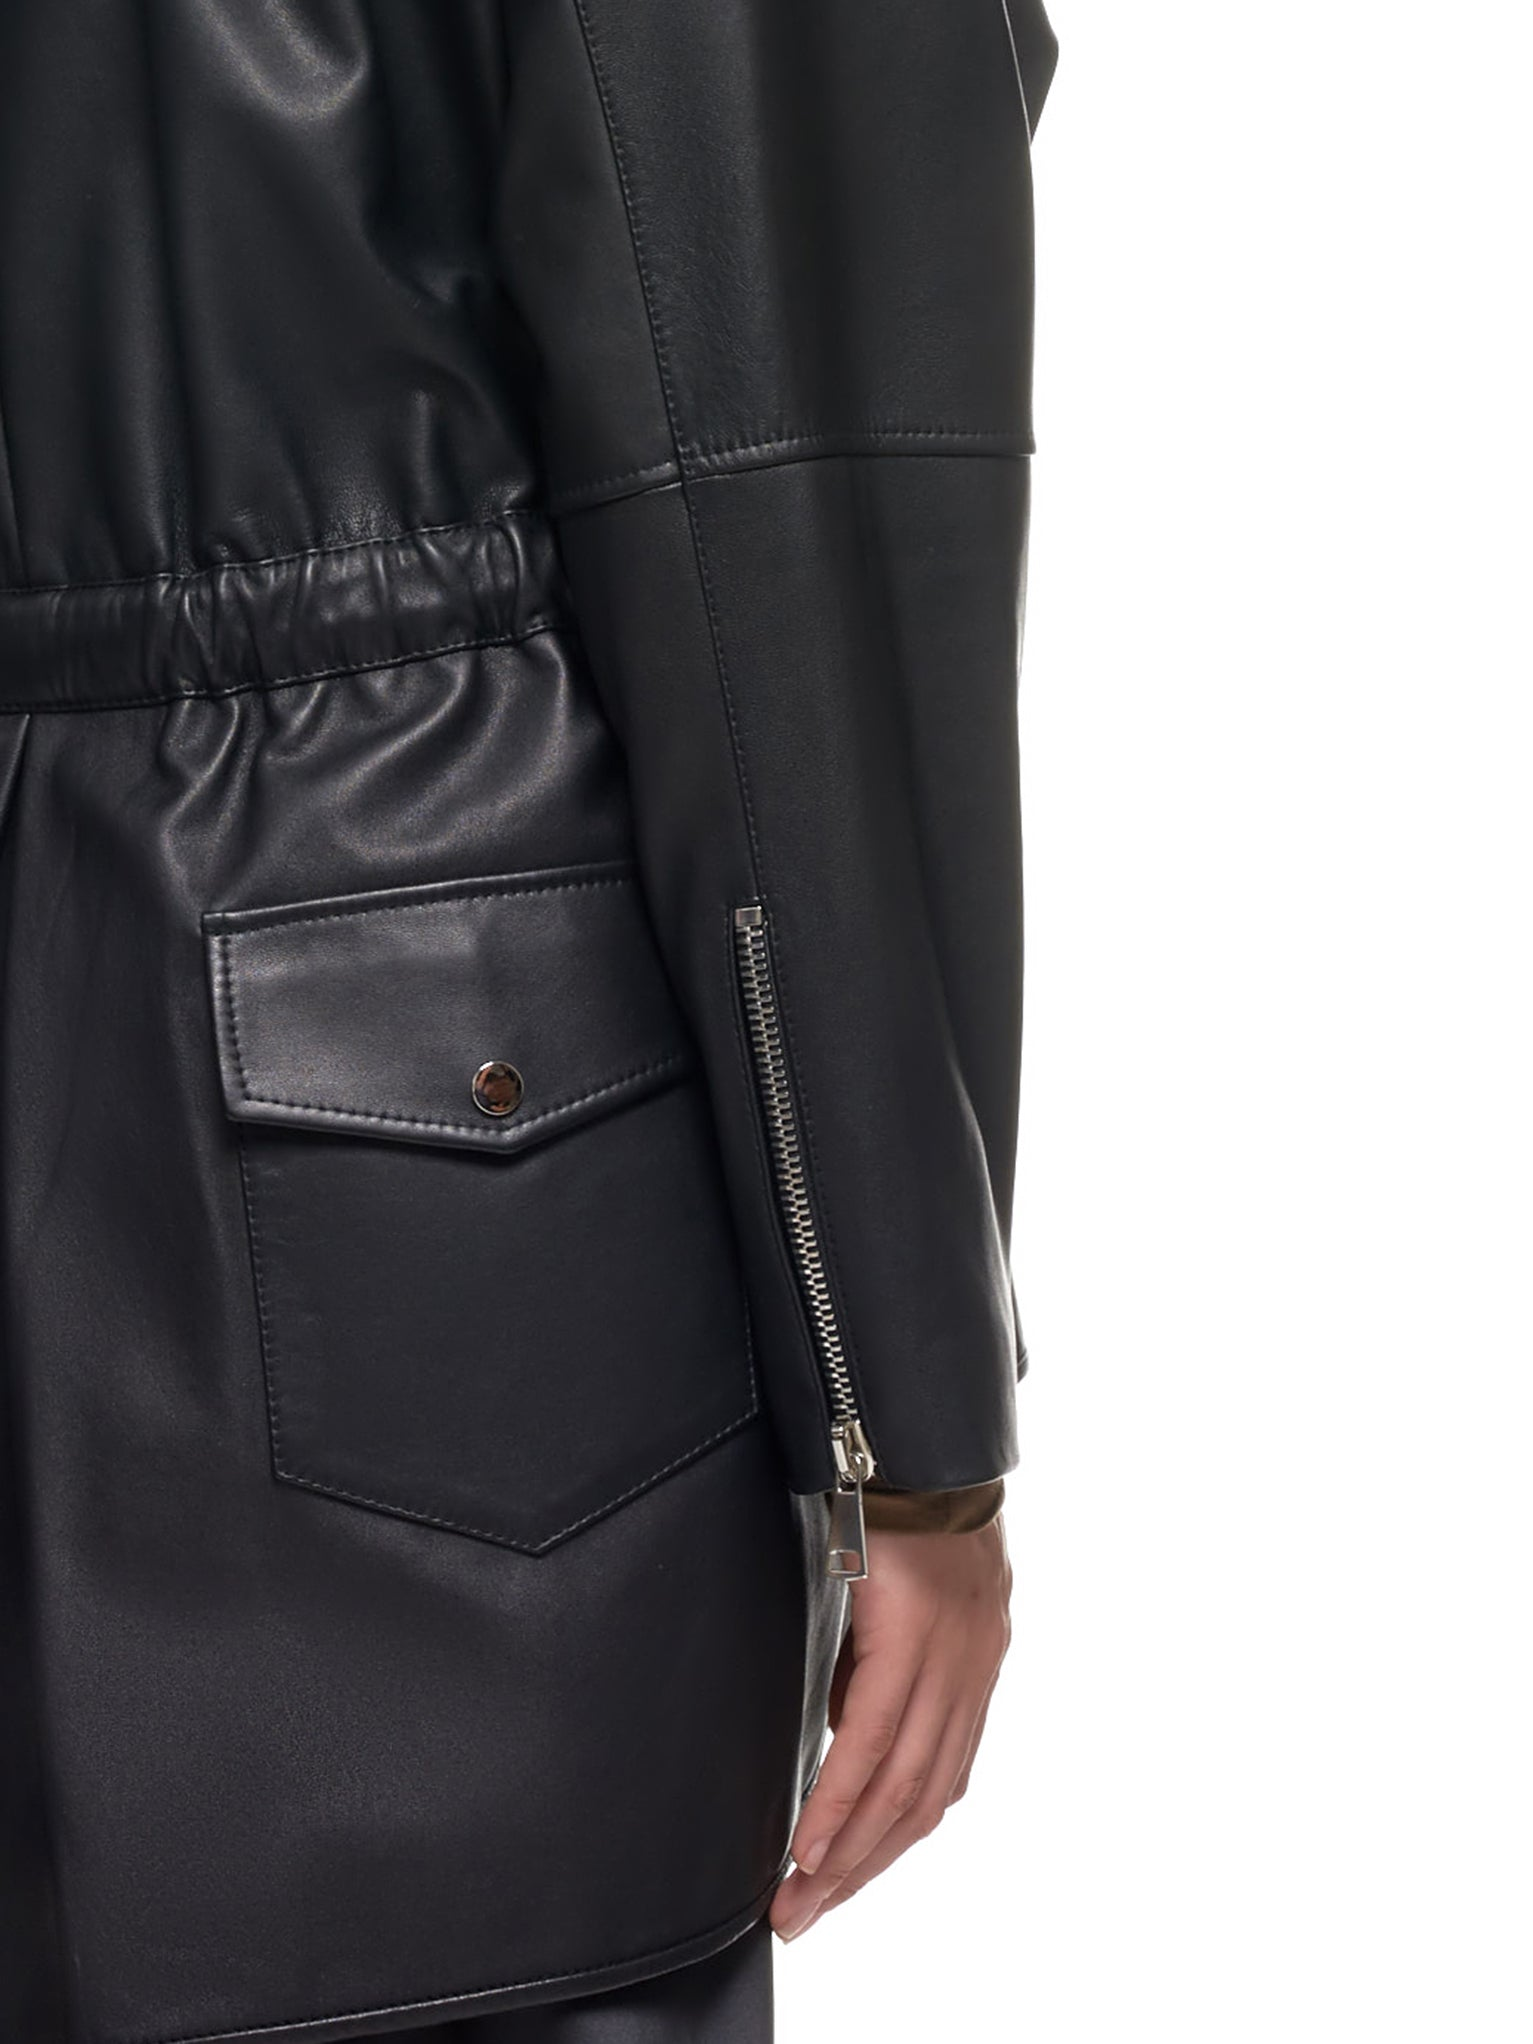 Lena Lumelsky Leather Jacket | H.Lorenzo Detail 2